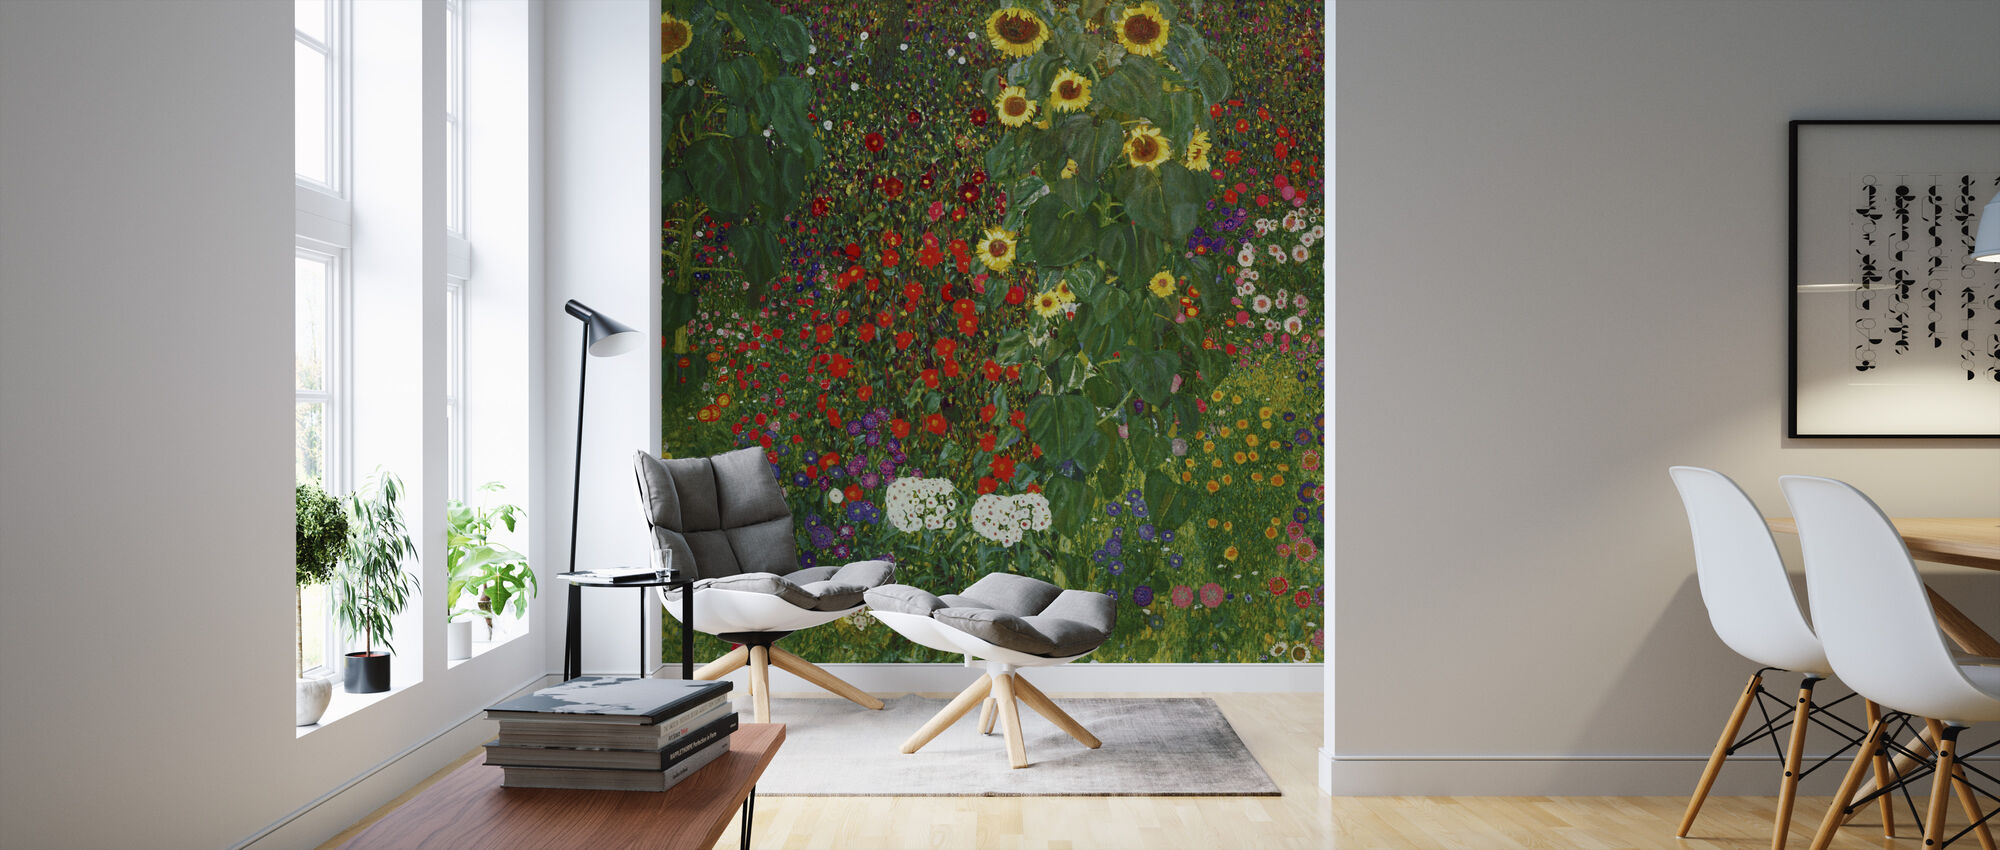 Garden with Sunflowers. Gustav Klimt - Wallpaper - Living Room